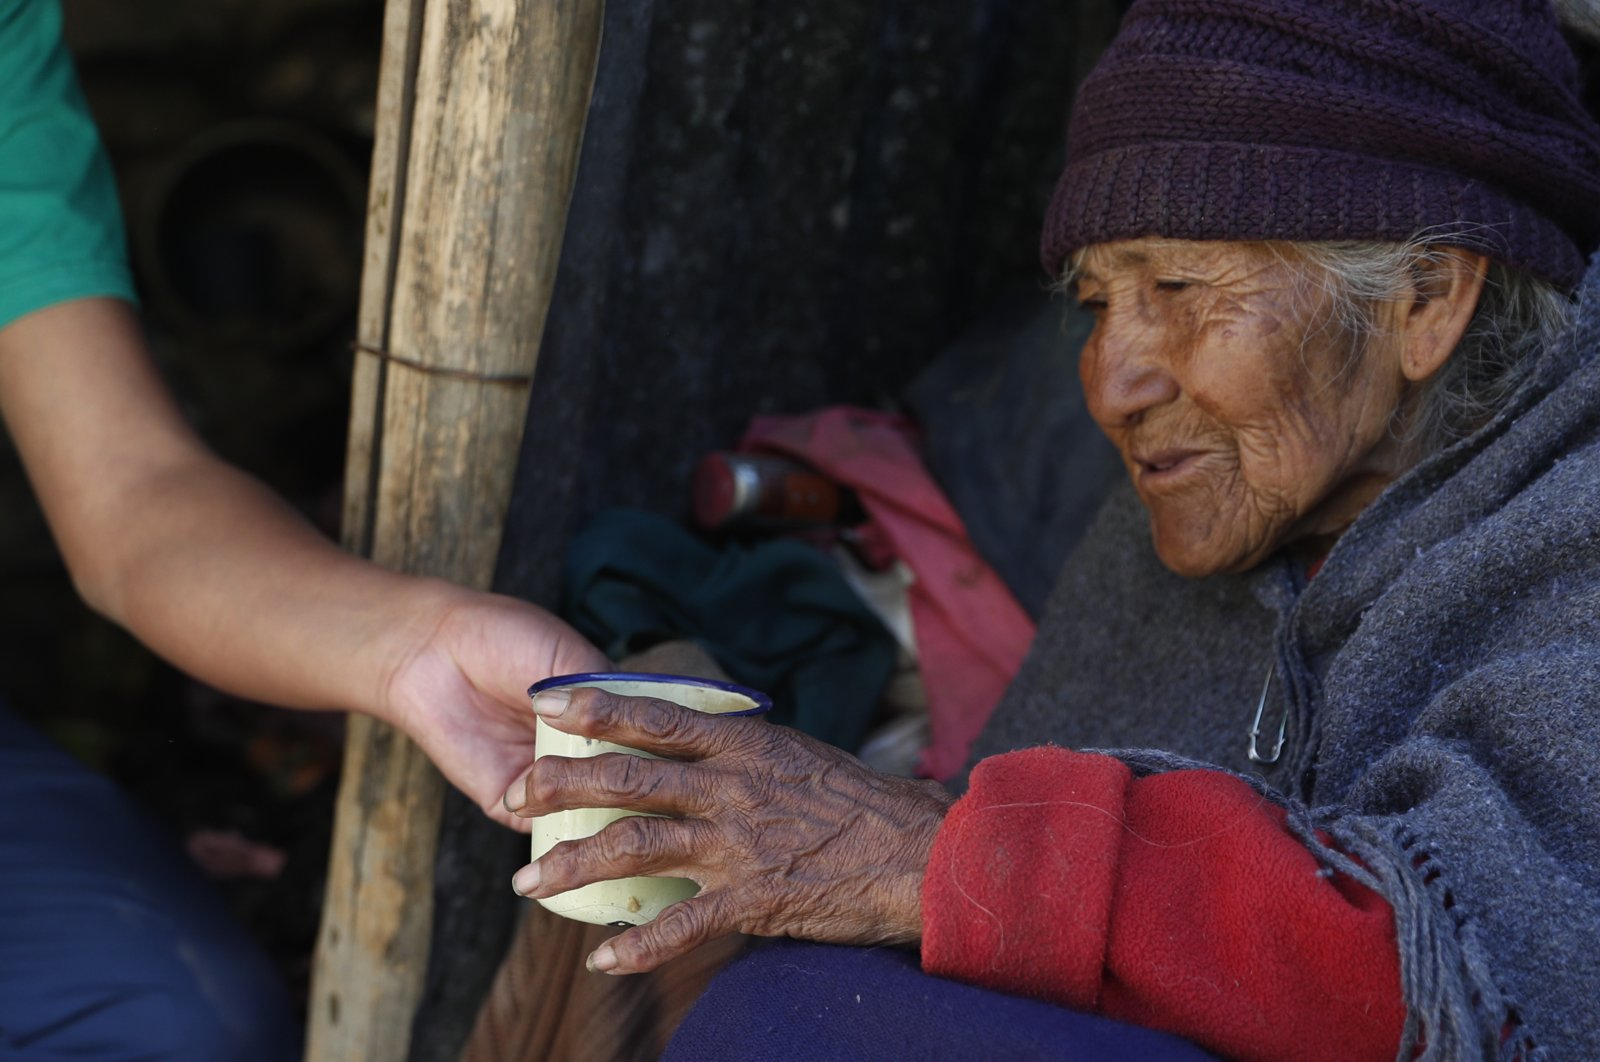 """80-year-old Dominga Aduviri is handed a cup of soda from her """"adopted"""" grandson Wilmer Gutierrez, in La Paz, Bolivia, May 11, 2020. (AP Photo)"""